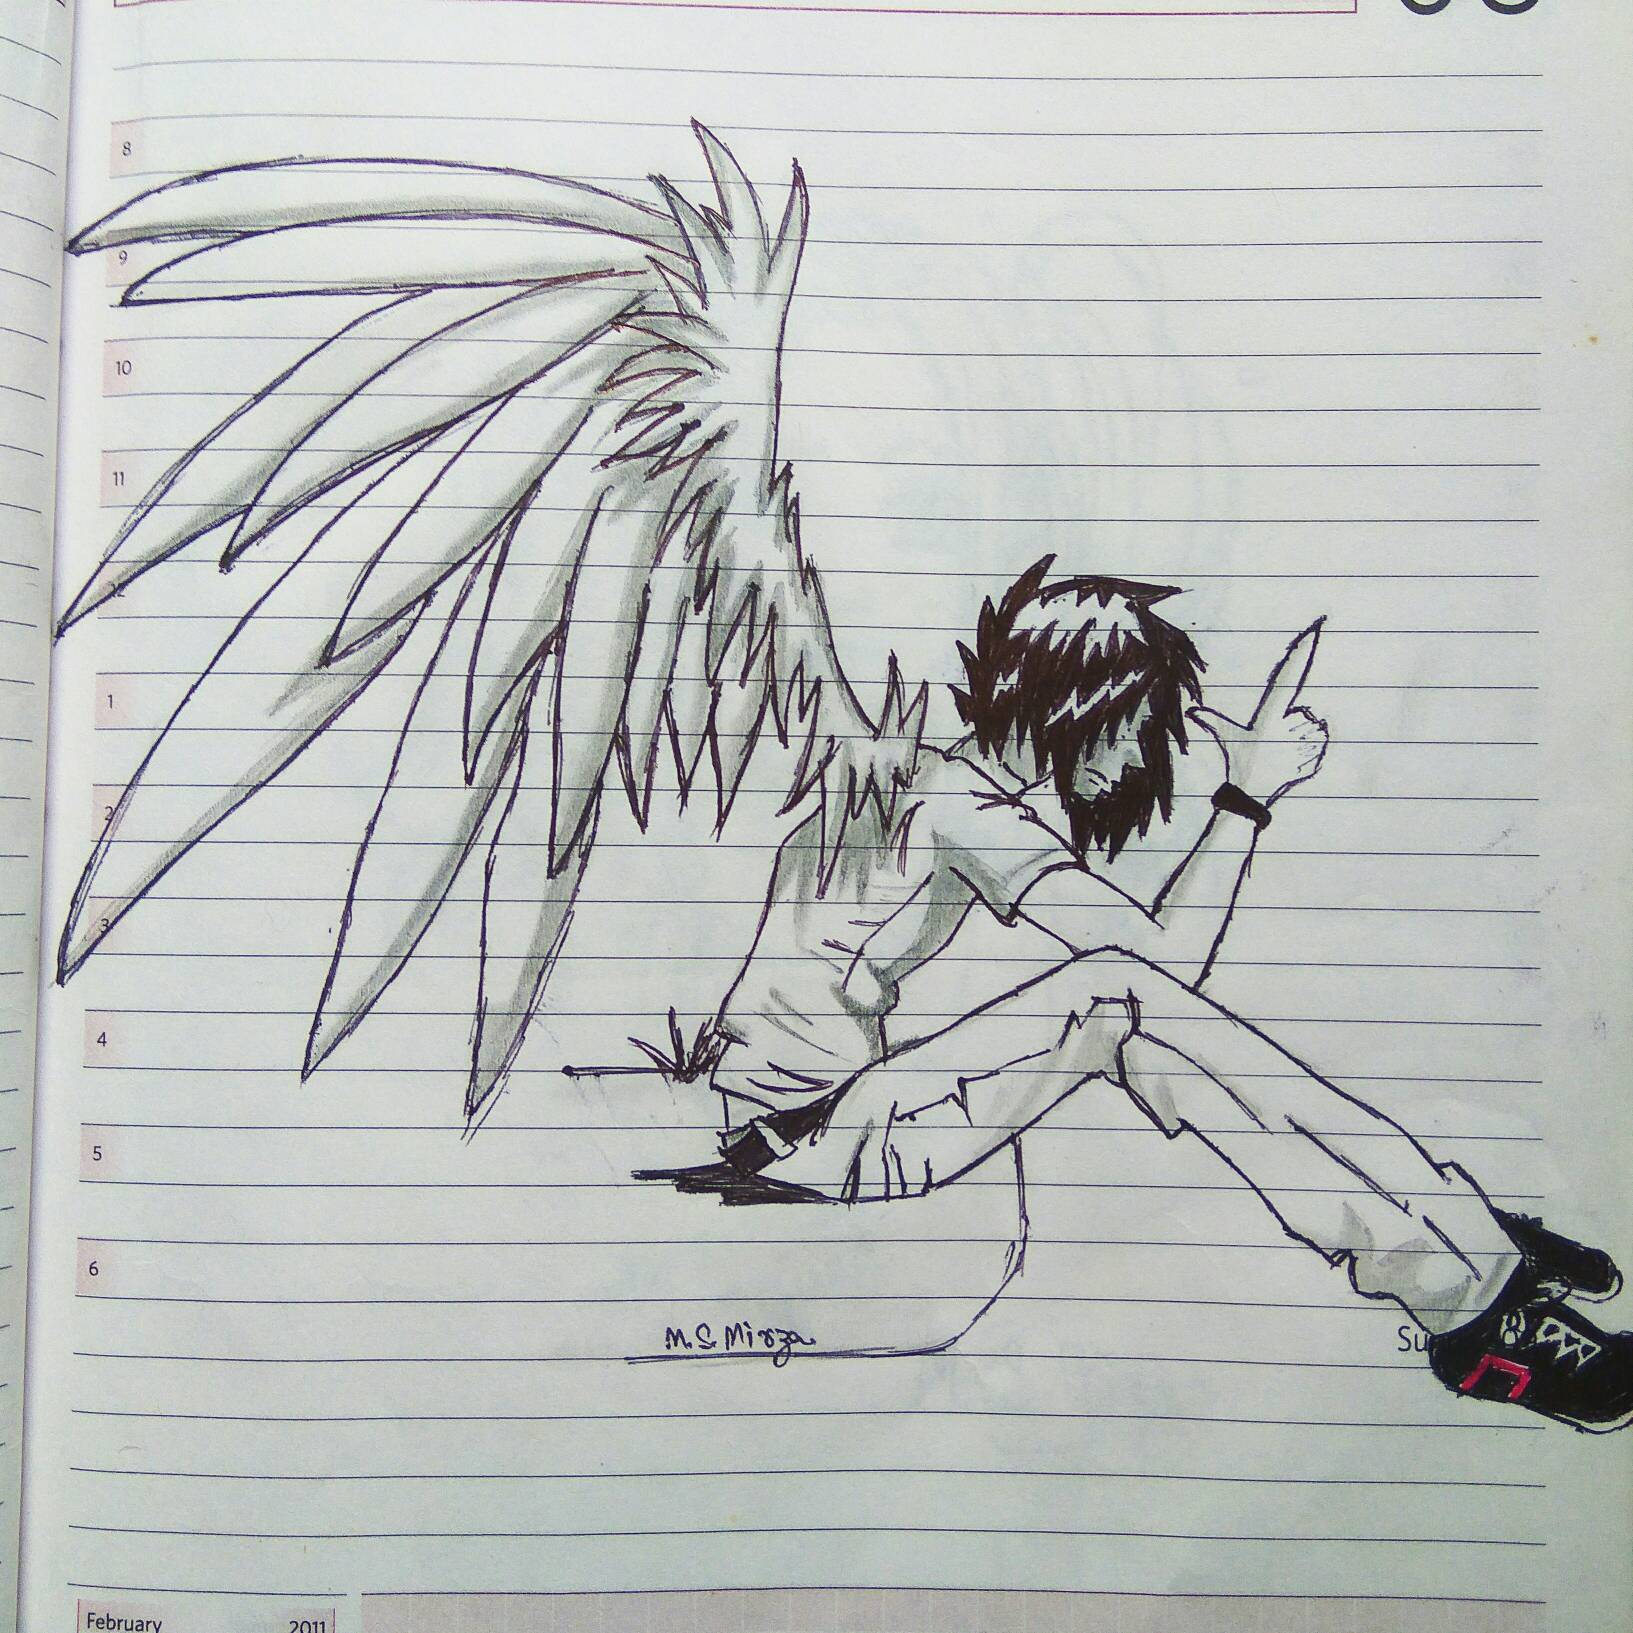 Winged anime boy drawing by mohd shad mirza by iamshadmirza